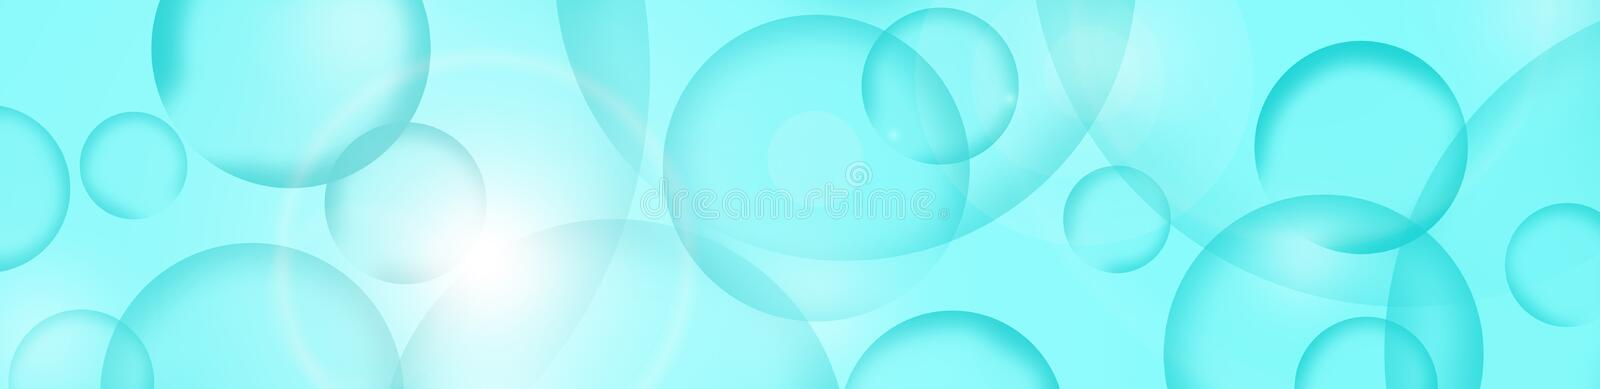 Background. Abstraction with colored circles royalty free illustration